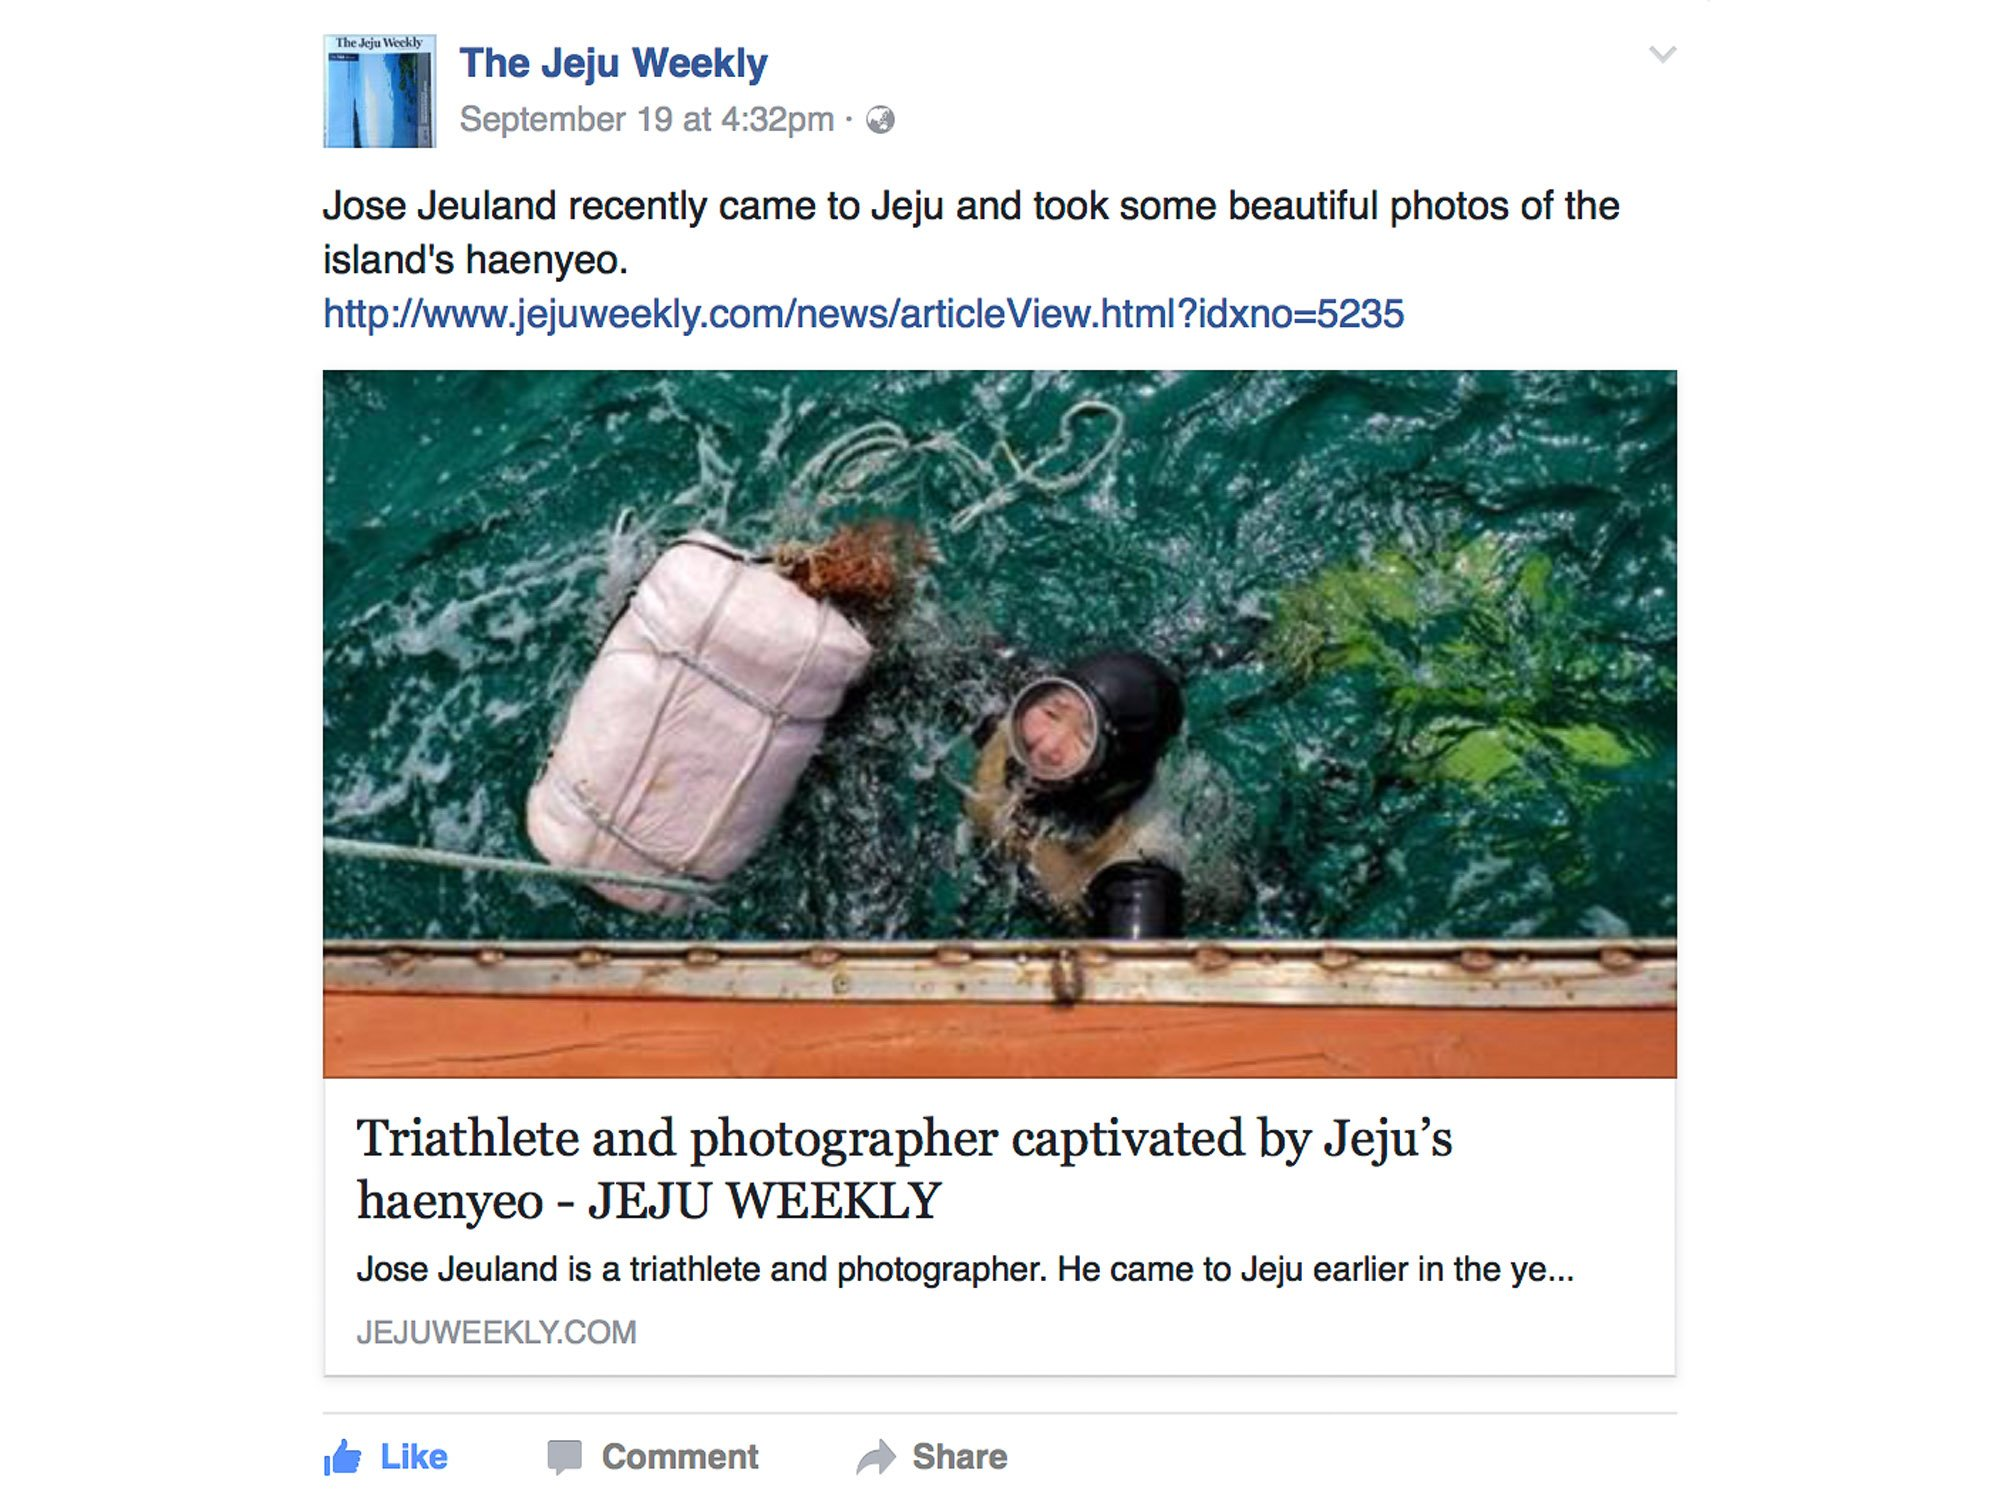 Jose Jeuland JeJu Weekly Haenyeo Article Photographer Triathlete newspaper facebook